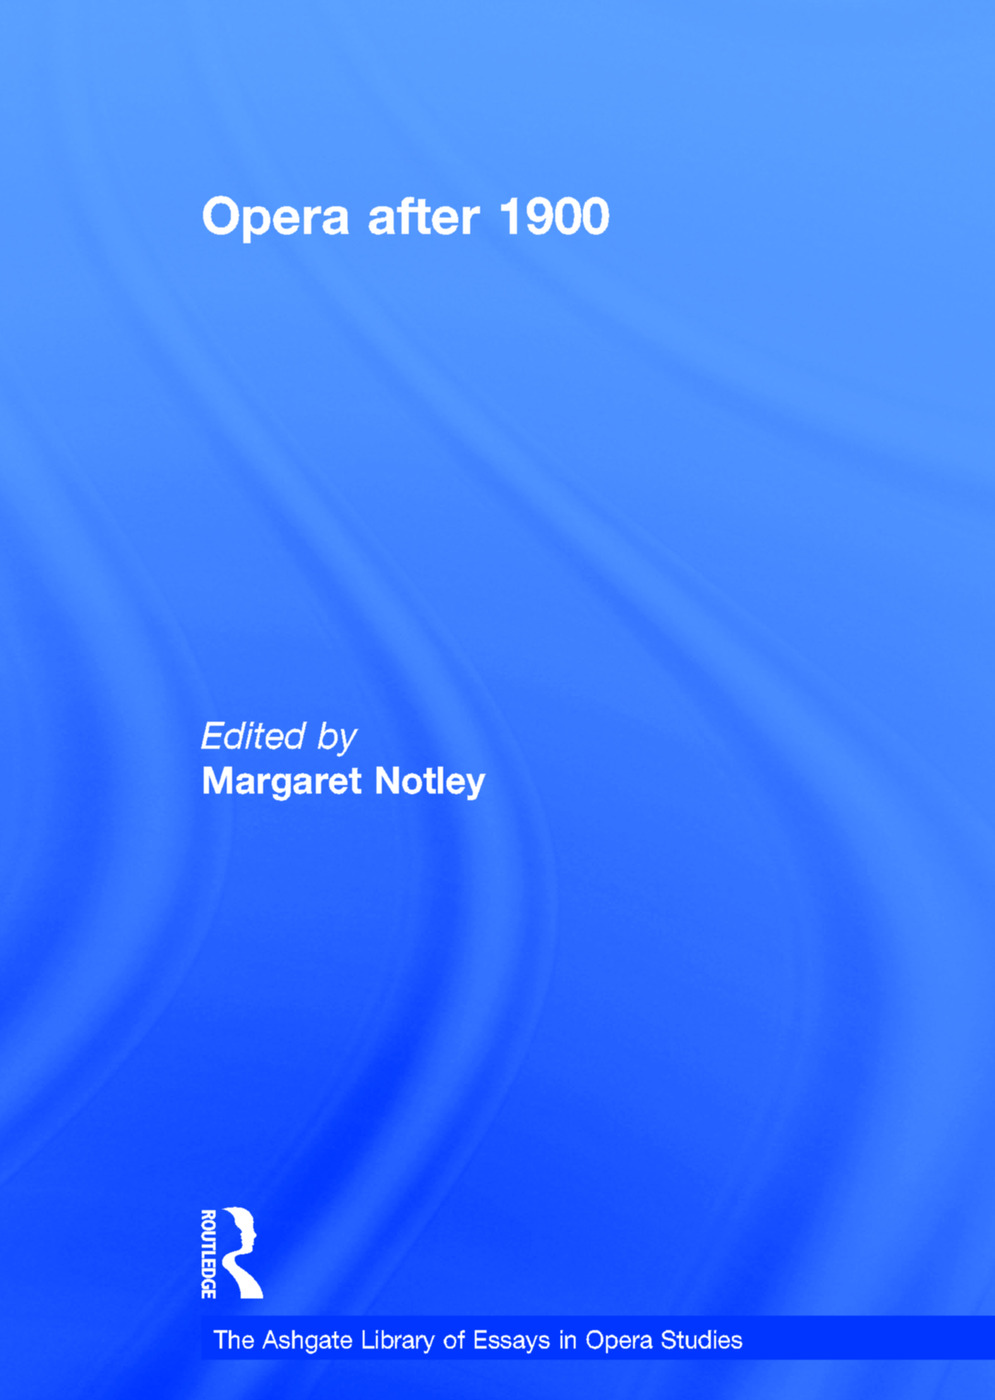 Opera after 1900